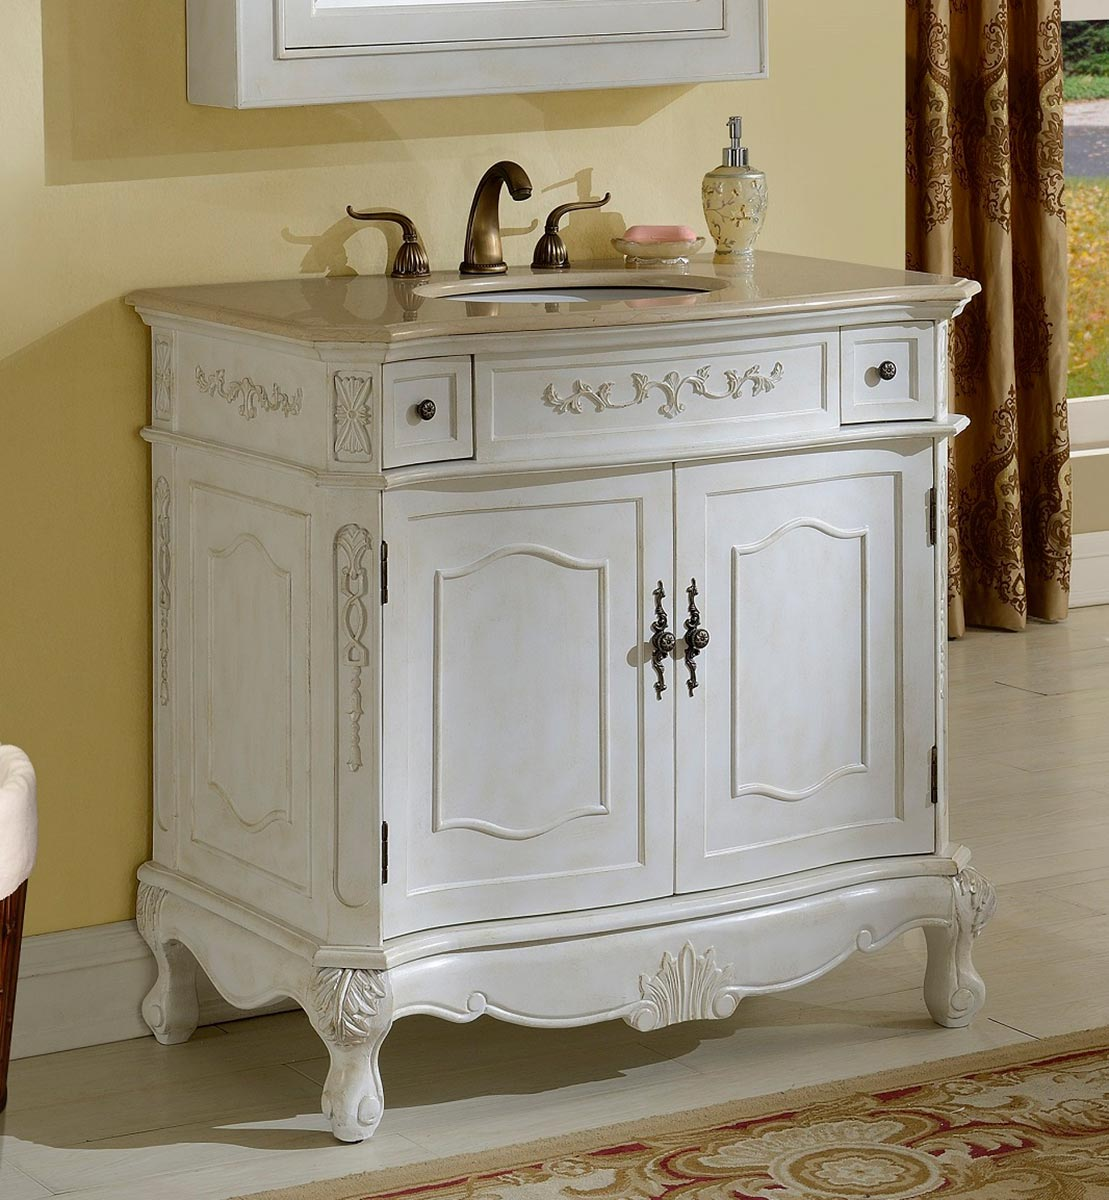 Chelsea Home Cambridge 36-inch Vanity - Antique White